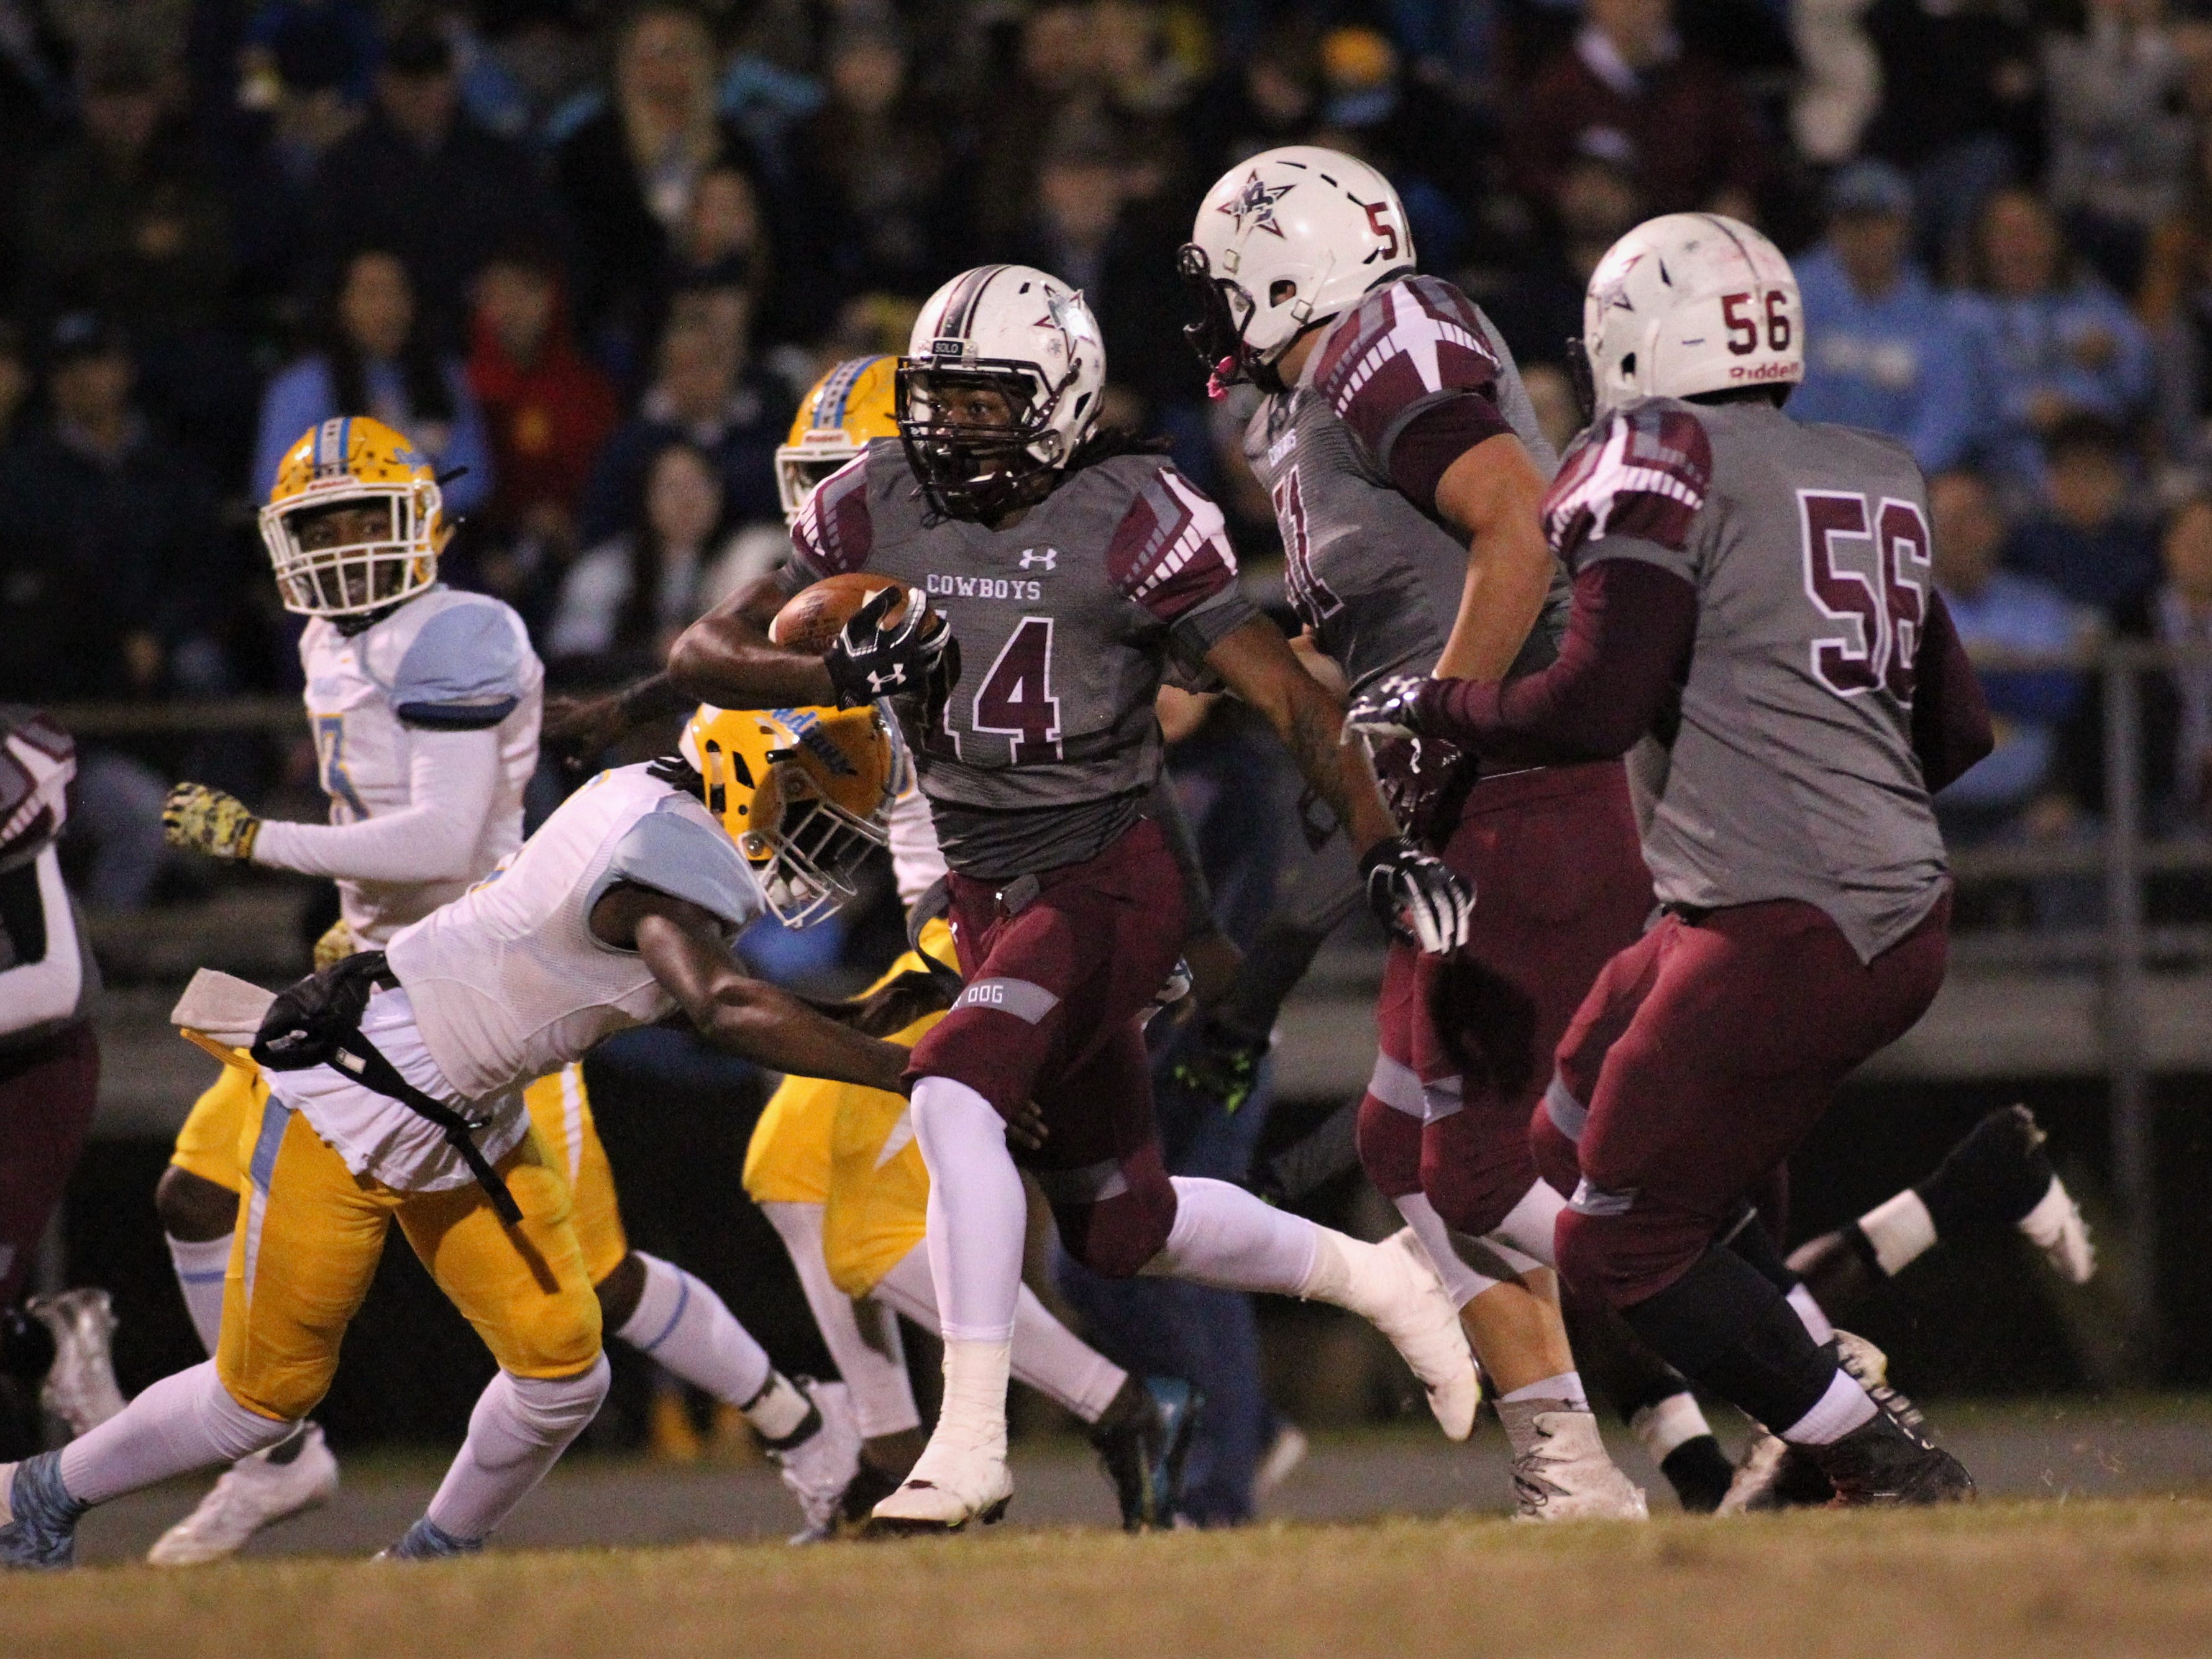 Melvin Brown takes a screen pass for a big gain as Madison County beat Chiefland 49-14 in a Region 3-1A final at Boot Hill Stadium on Friday, Nov. 23, 2018.